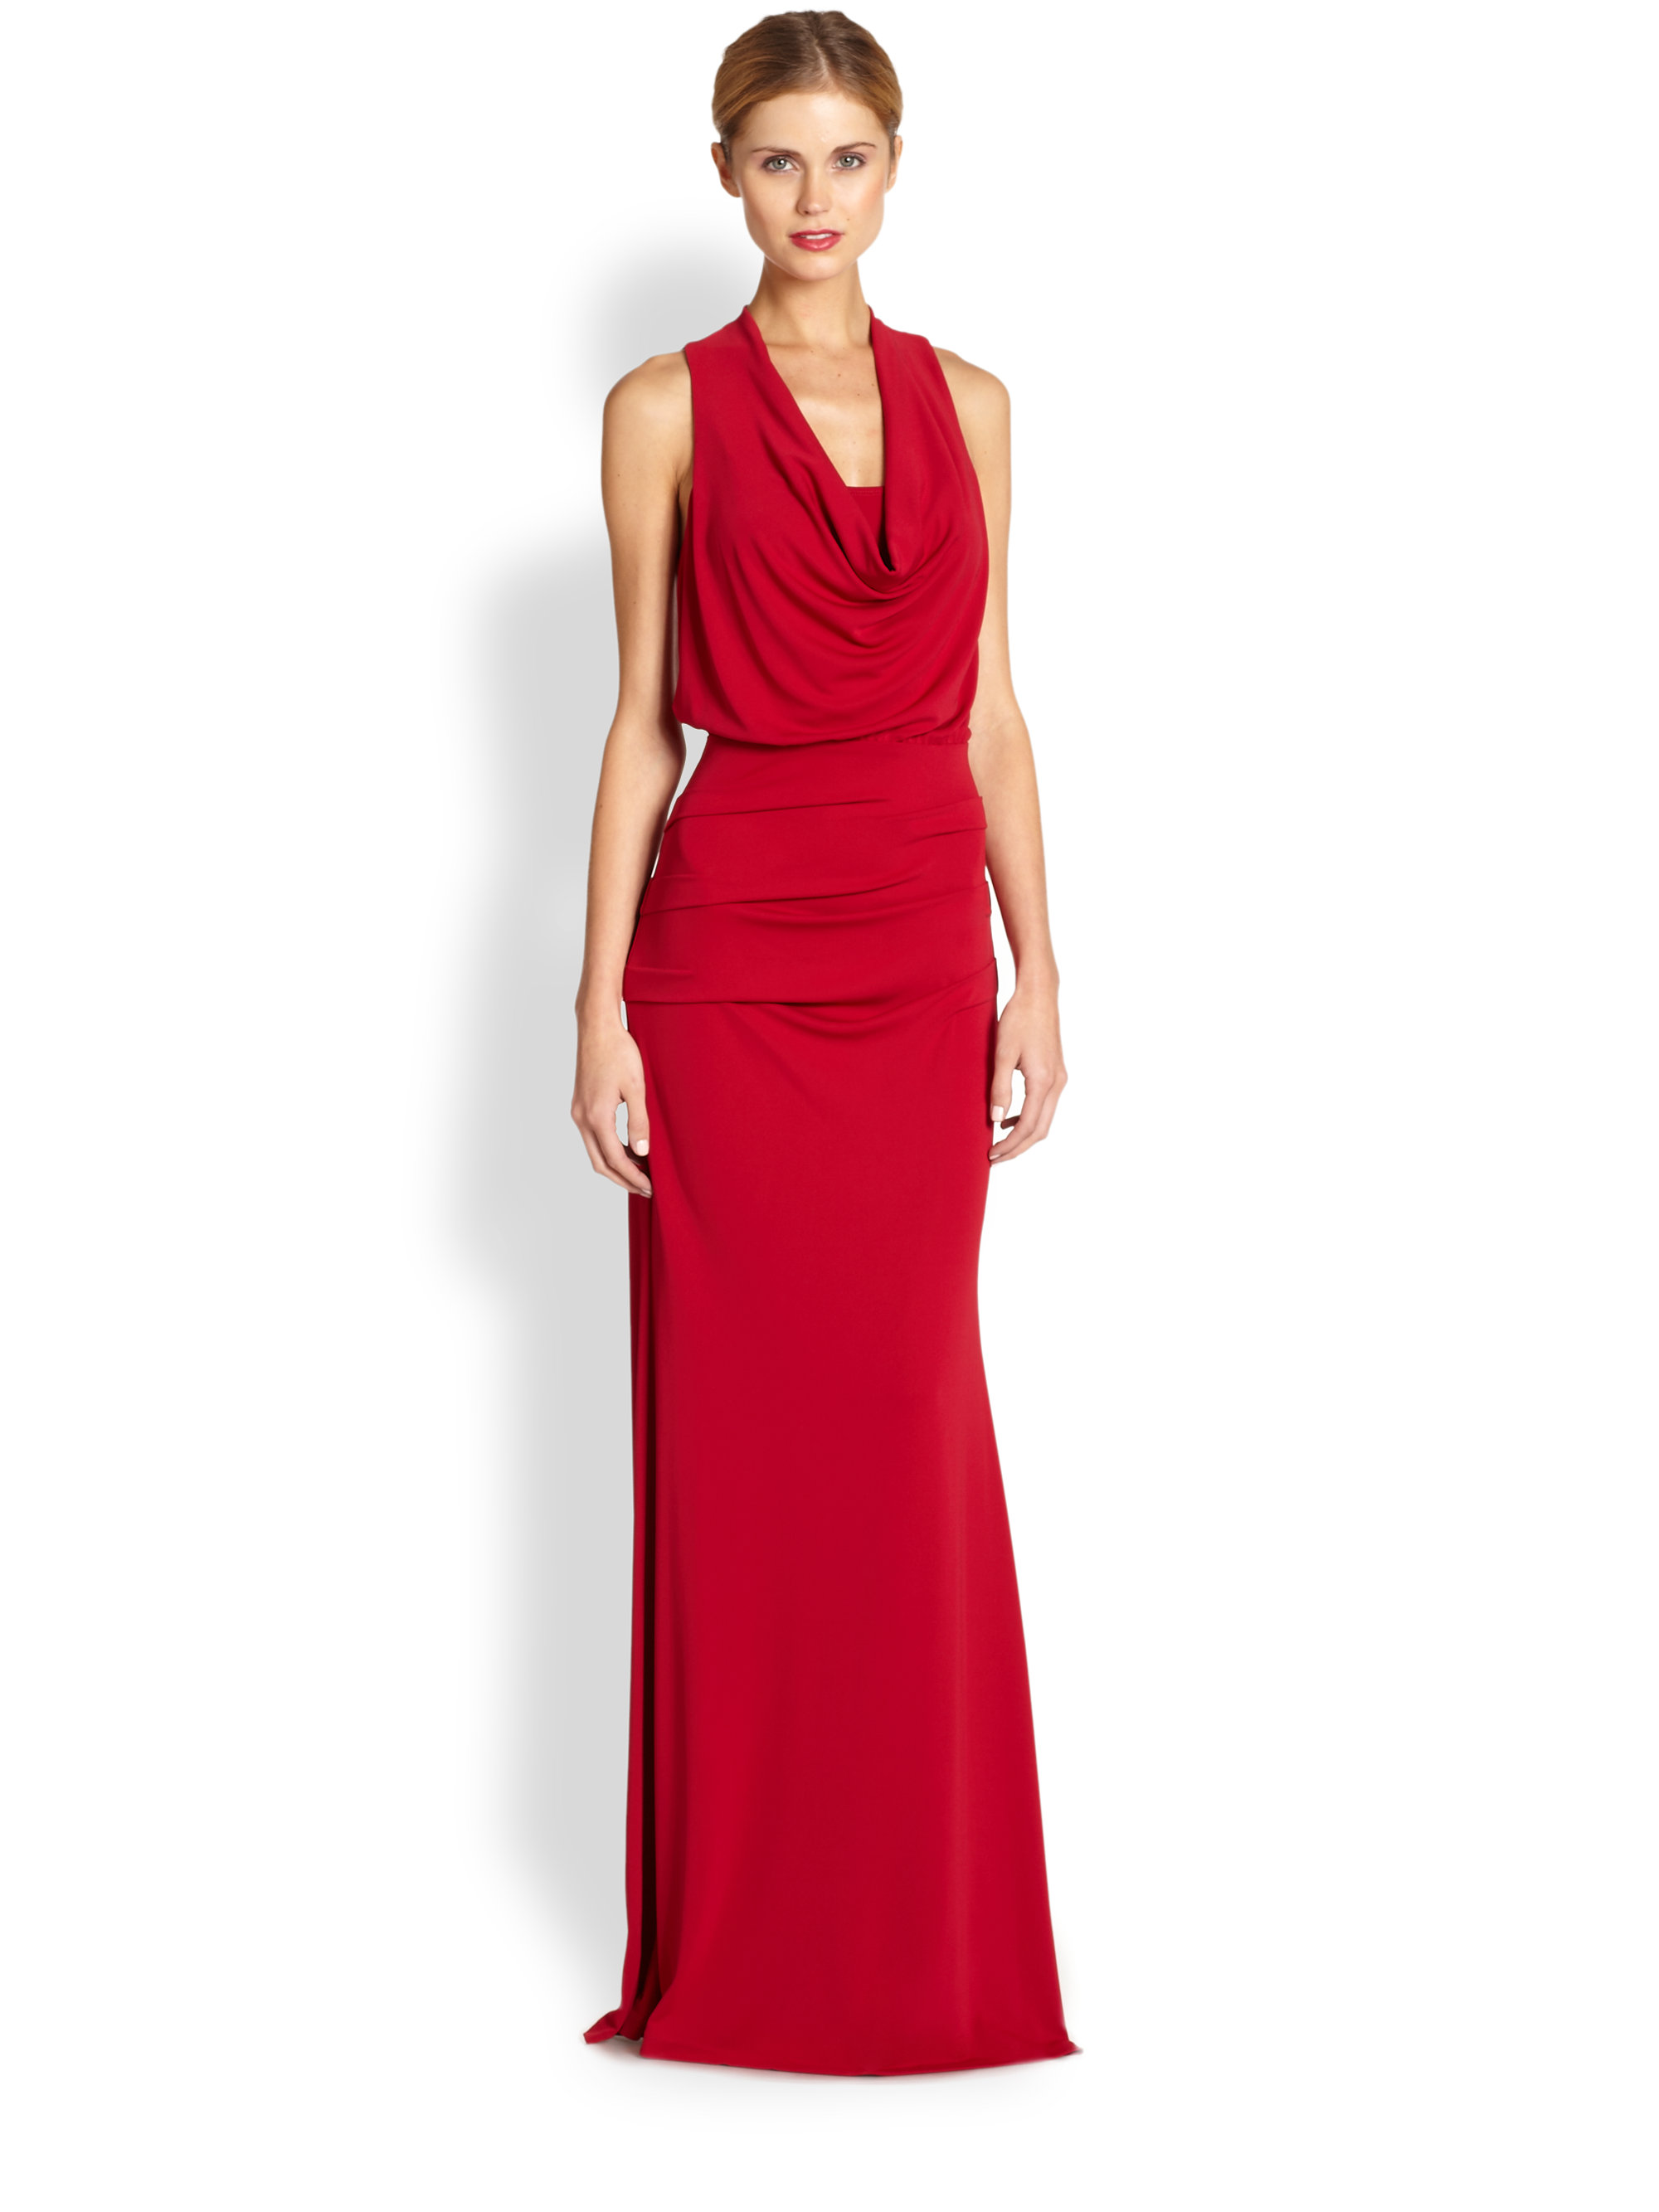 Lyst - Nicole Miller Matte Jersey Gown in Red